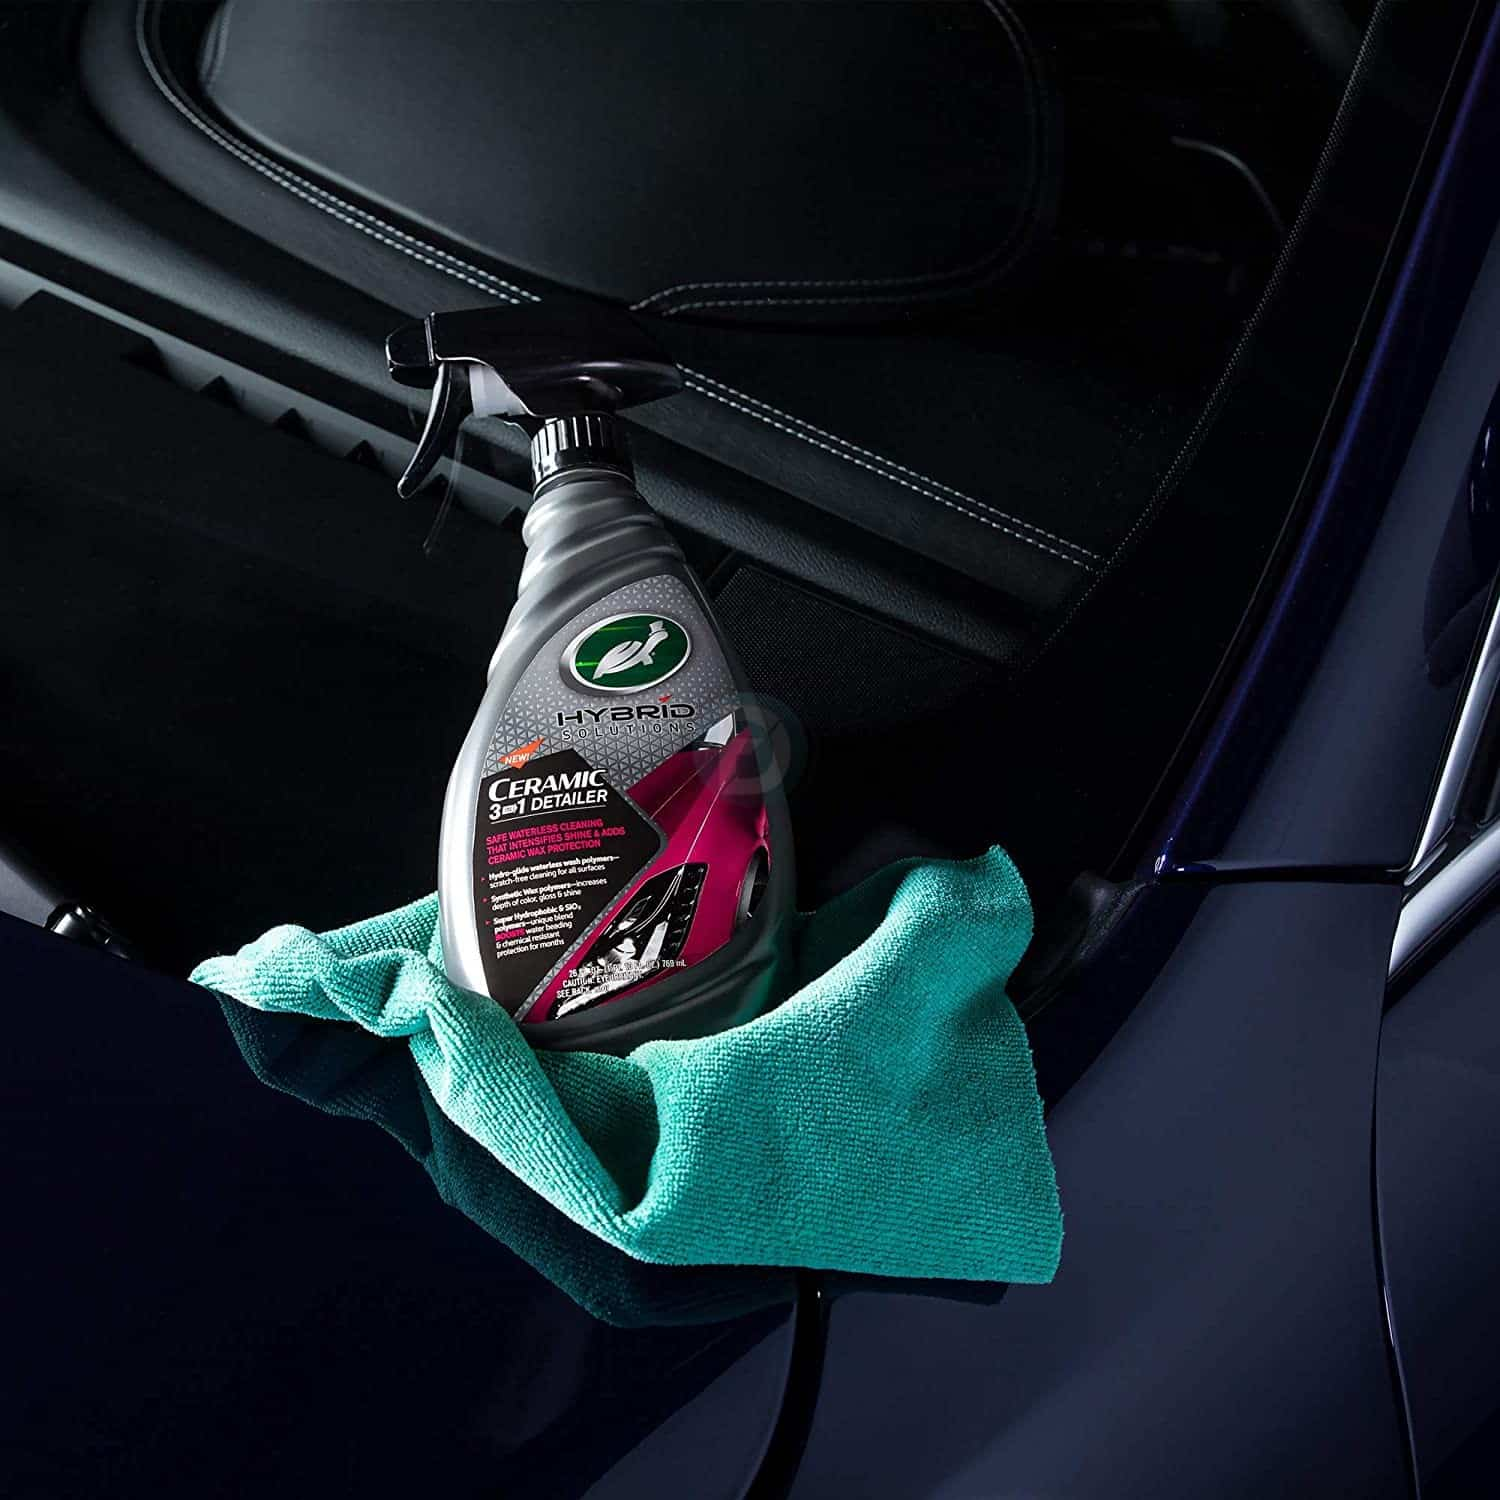 HYBRID SOLUTIONS CERAMIC 3 IN 1 DETAILER - TURTLE WAX